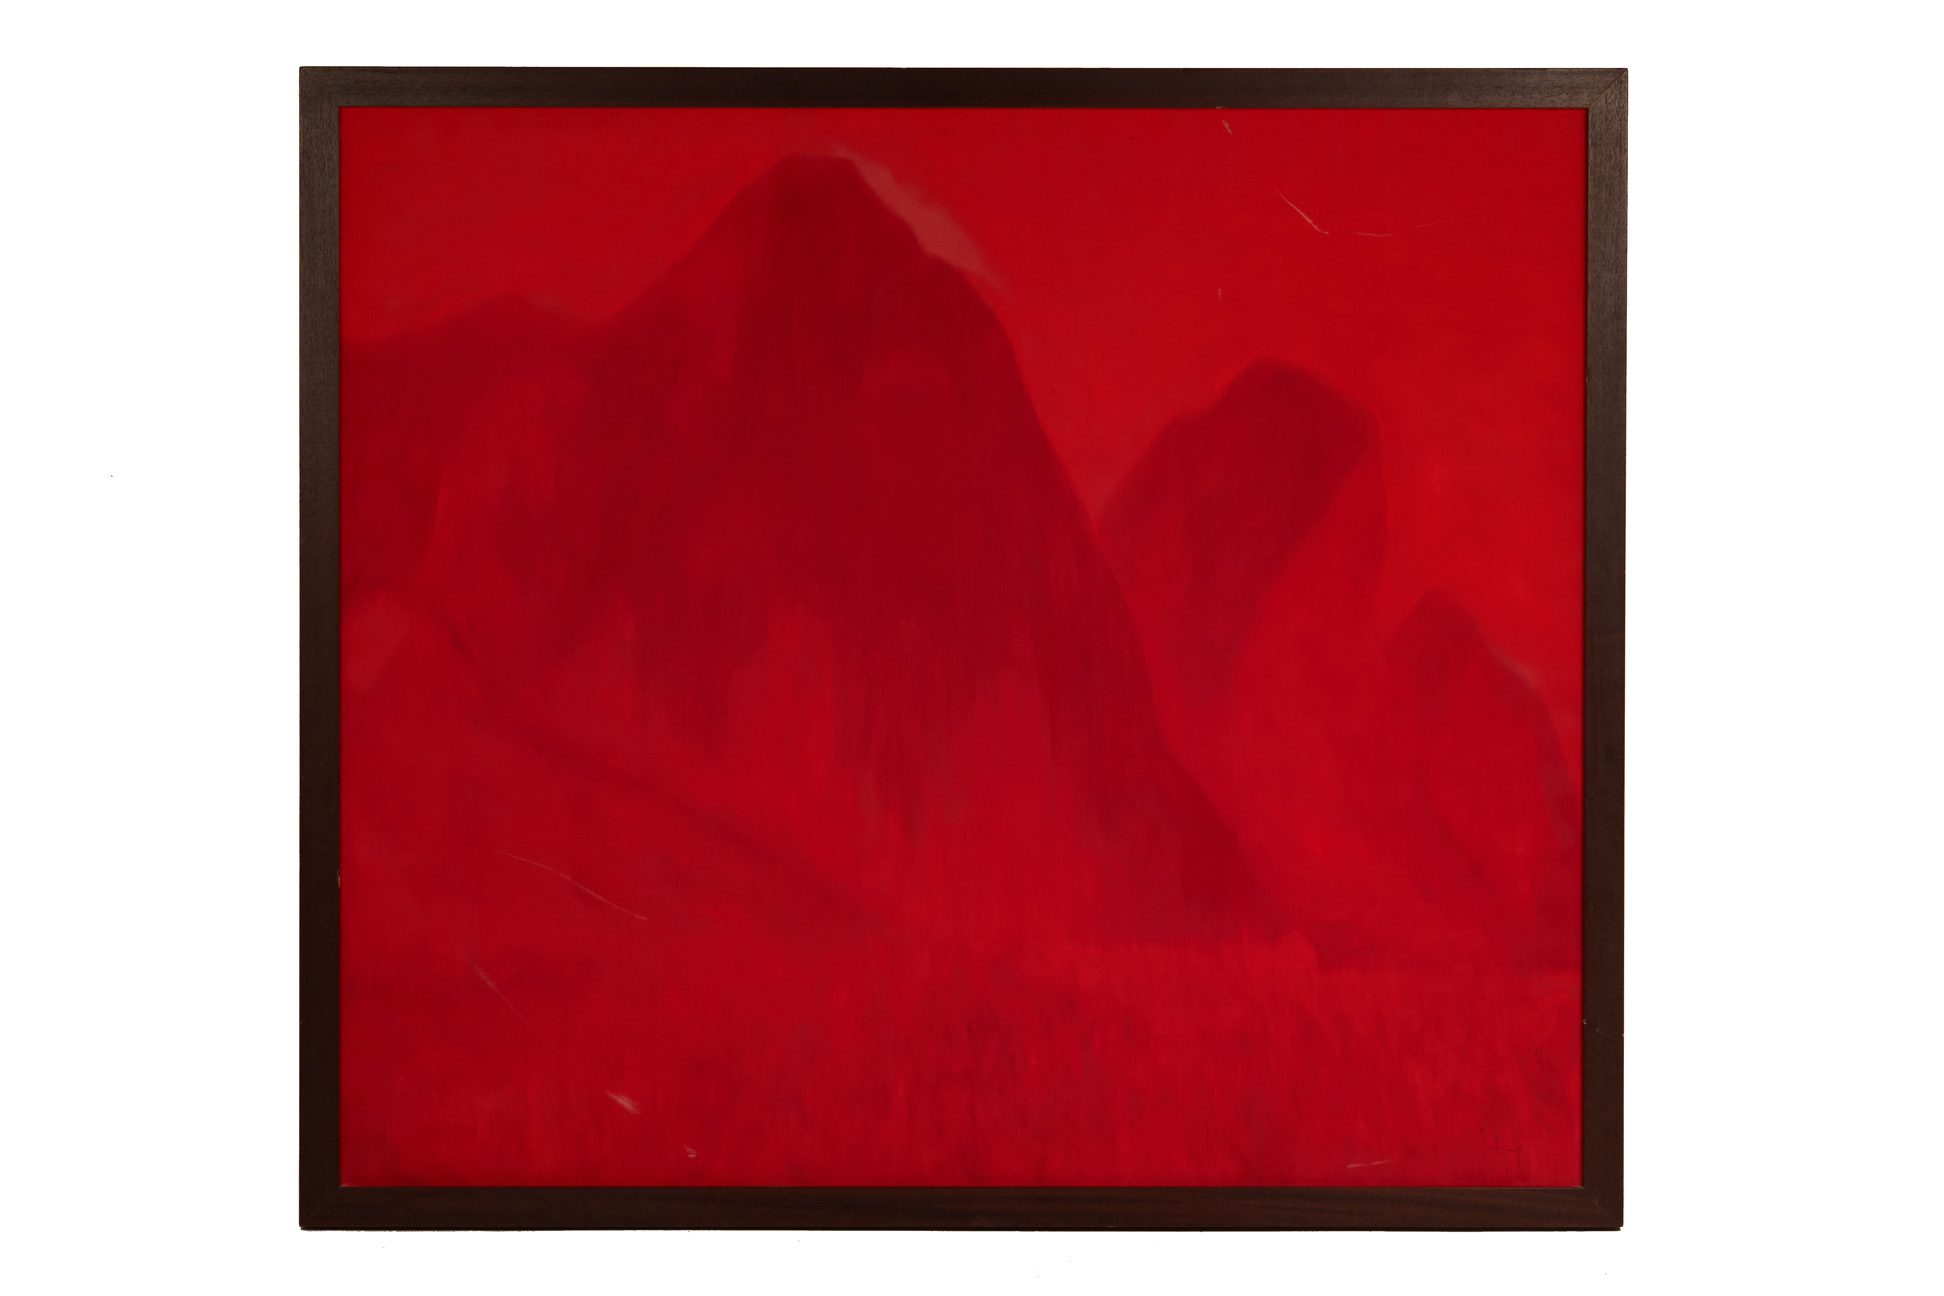 HOANG DUC DUNG (VIETNAMESE, B.1971) - MAJESTY MOUNTAIN - Image 2 of 4